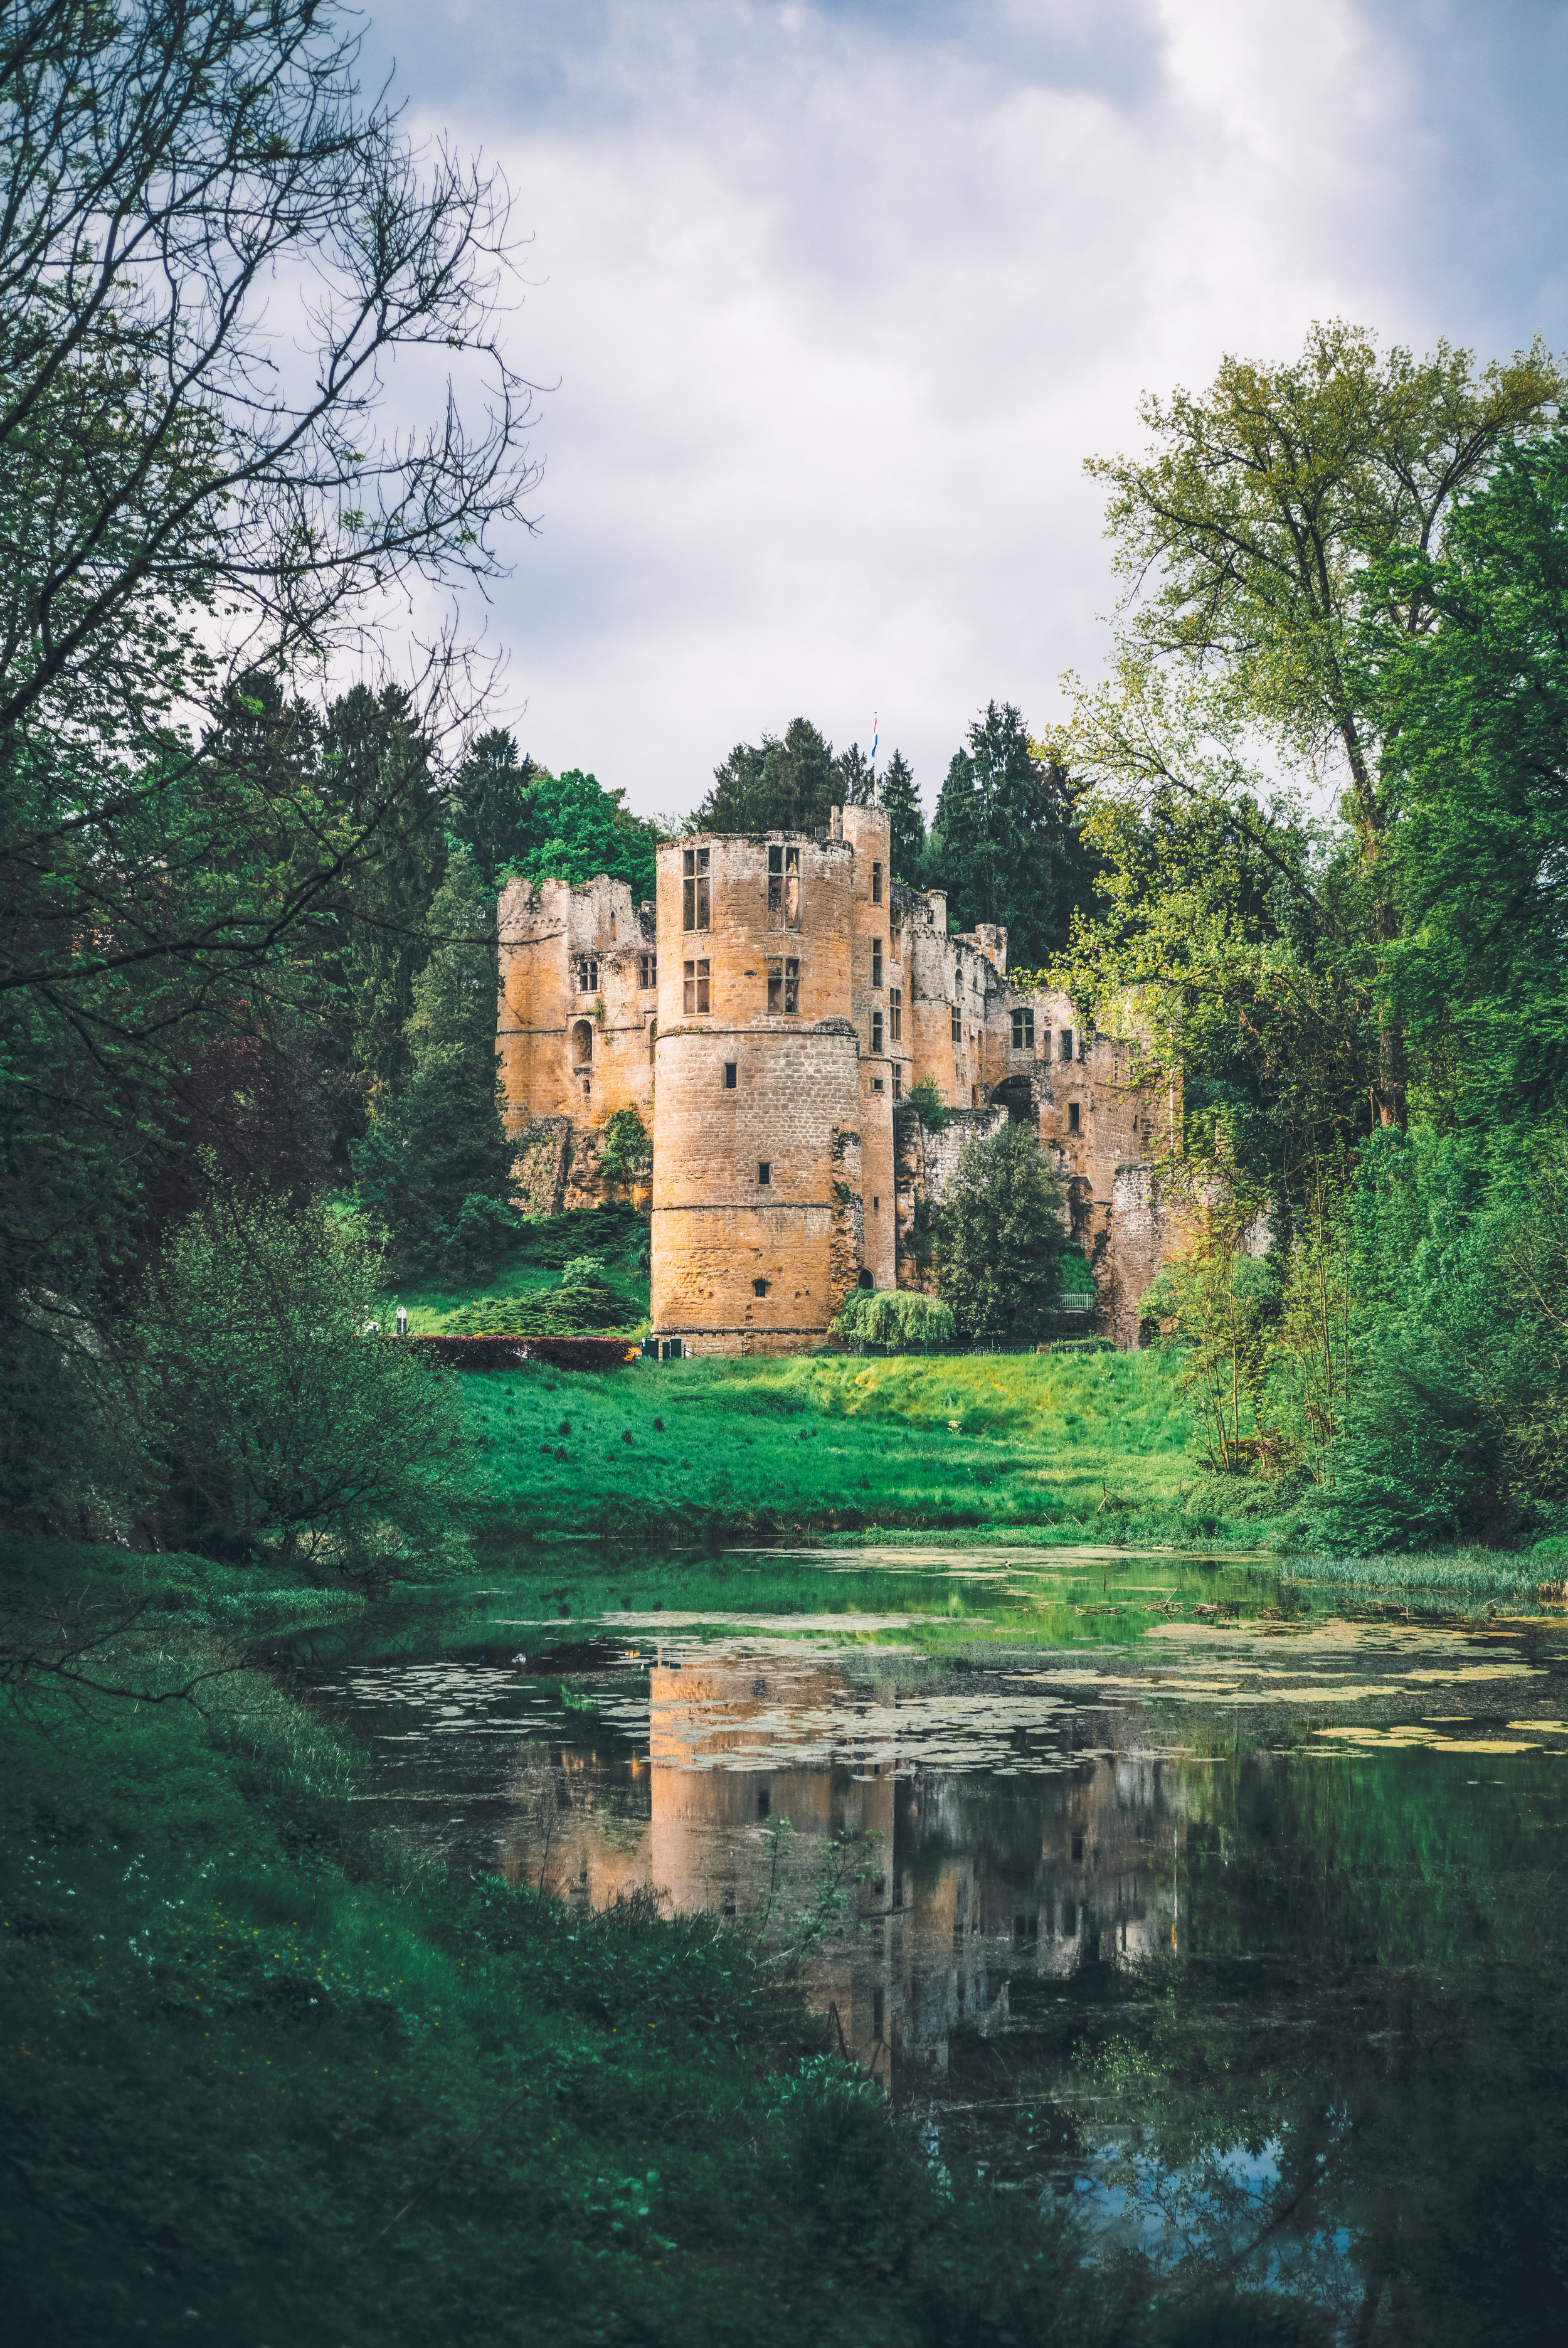 The Castle of Beaufort emerges from the woods!